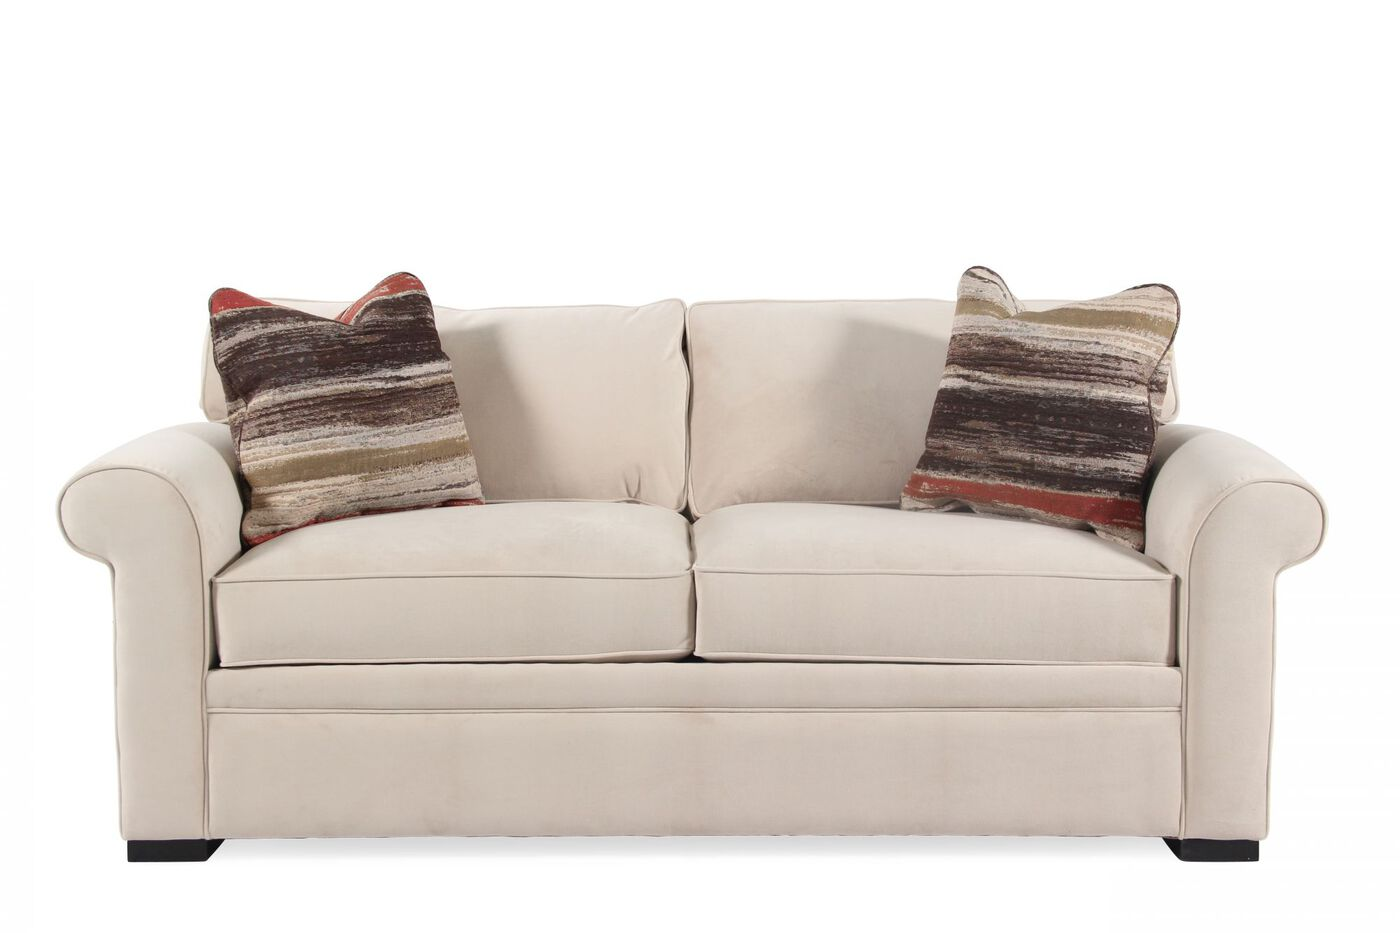 Rolled arm transitional 38quot sleeper sofa in cream mathis for Transitional sectional sofa sleeper